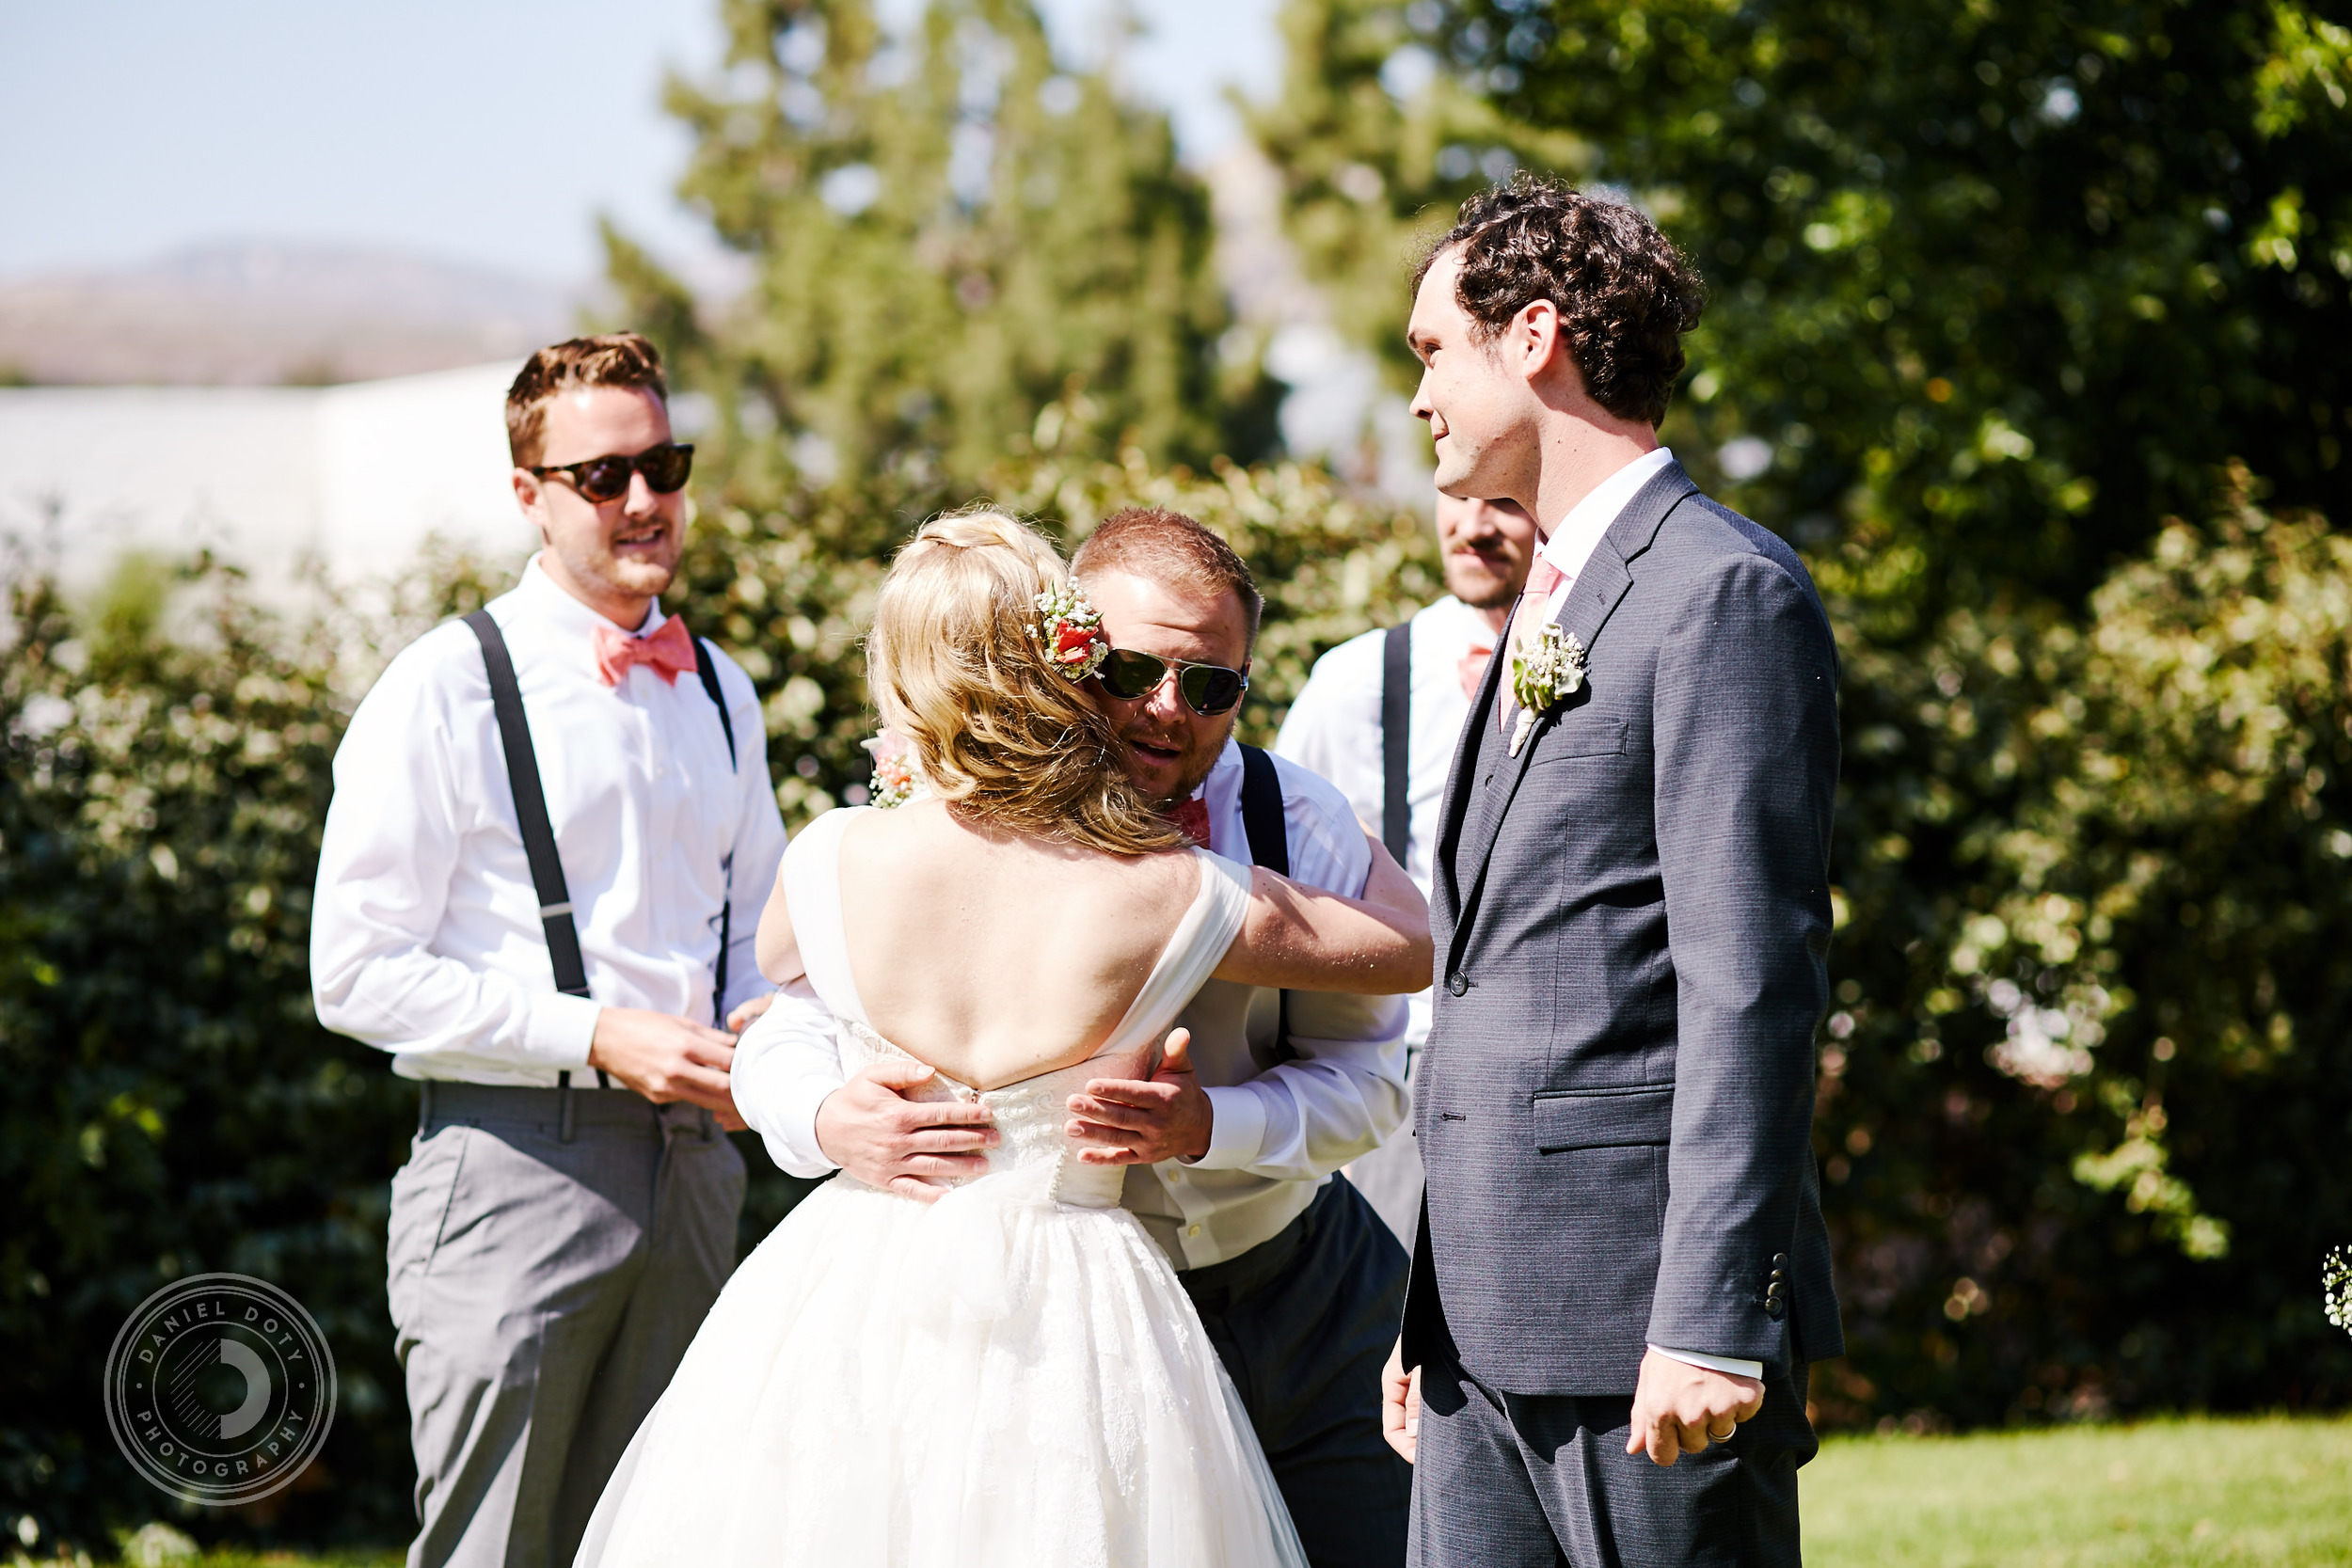 Daniel Doty Photography Erin Colin SoCal Wedding Photographer Strathearn 151.jpg